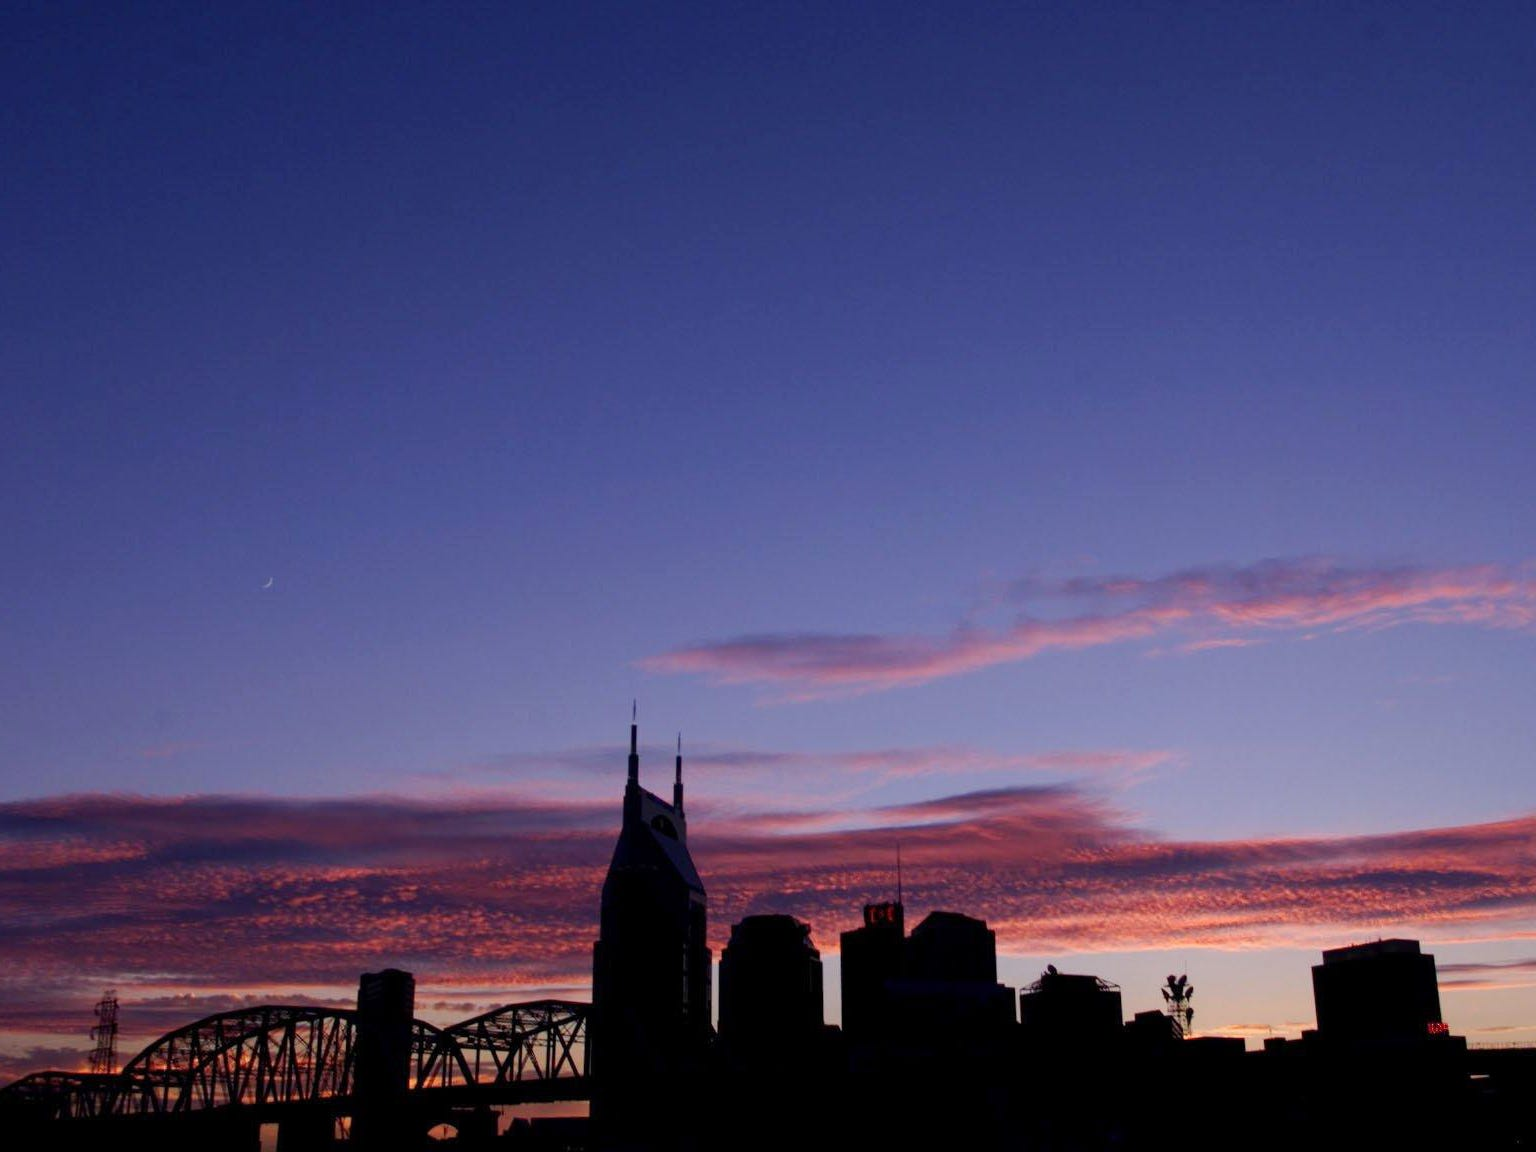 A view of downtown Nashville skyline at sunset Sept. 6, 2000 with Shelby Street footbridge at left.